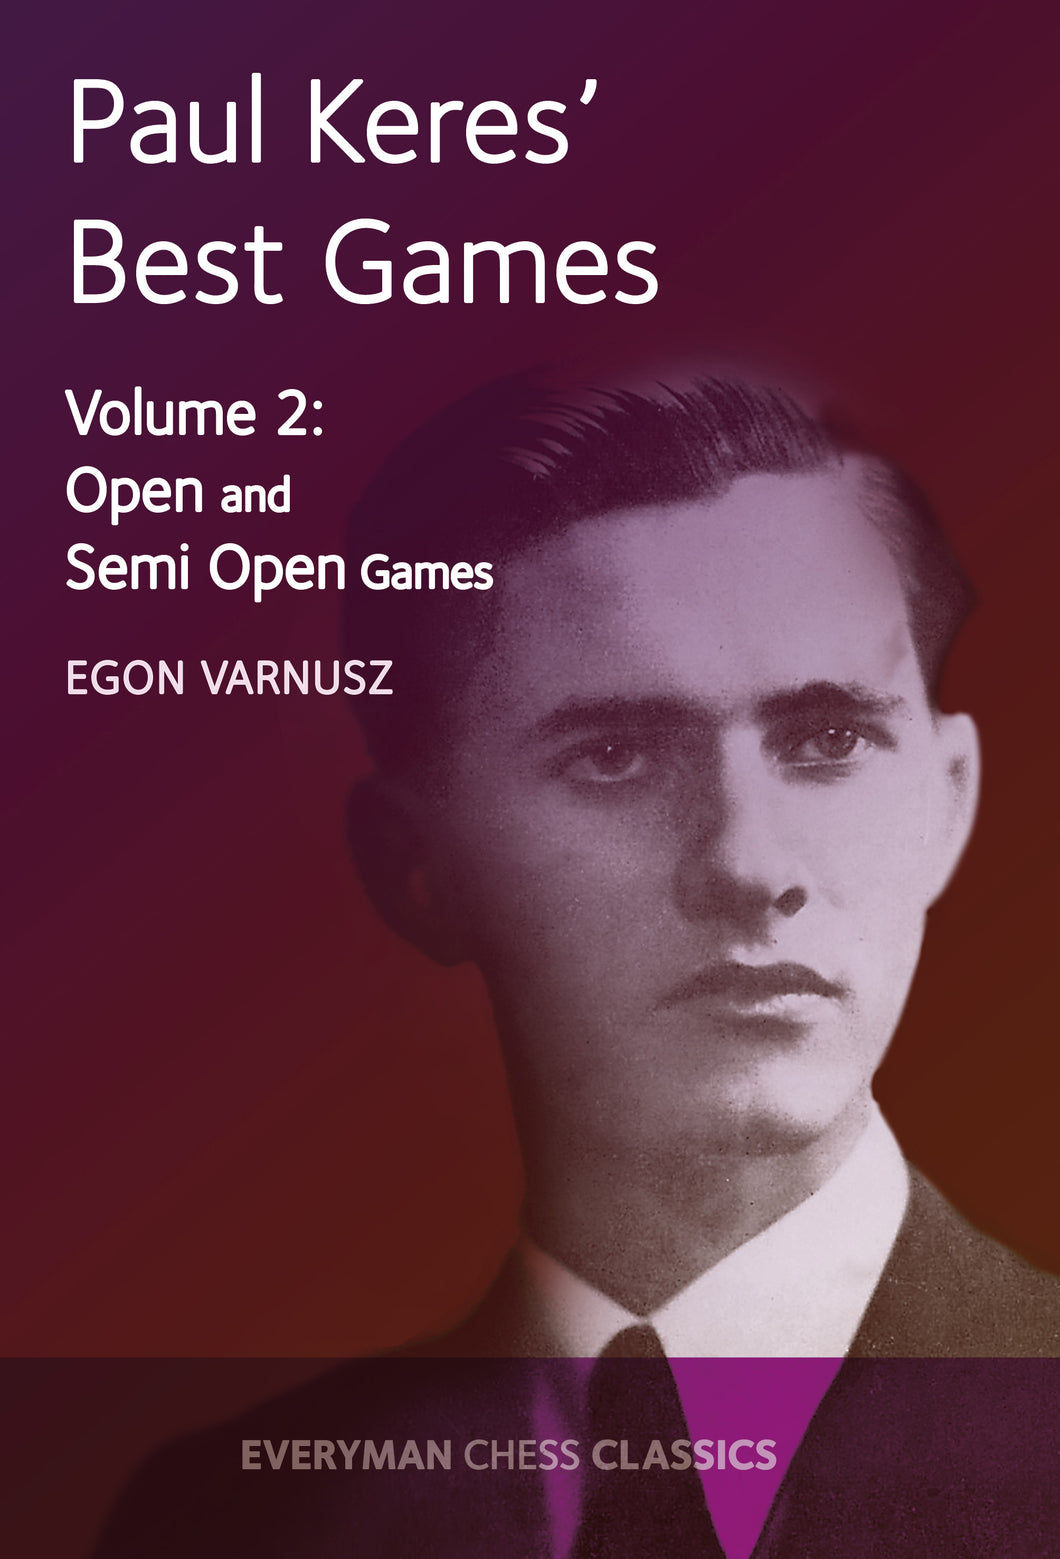 Paul Keres Best Games Volume 2 front cover